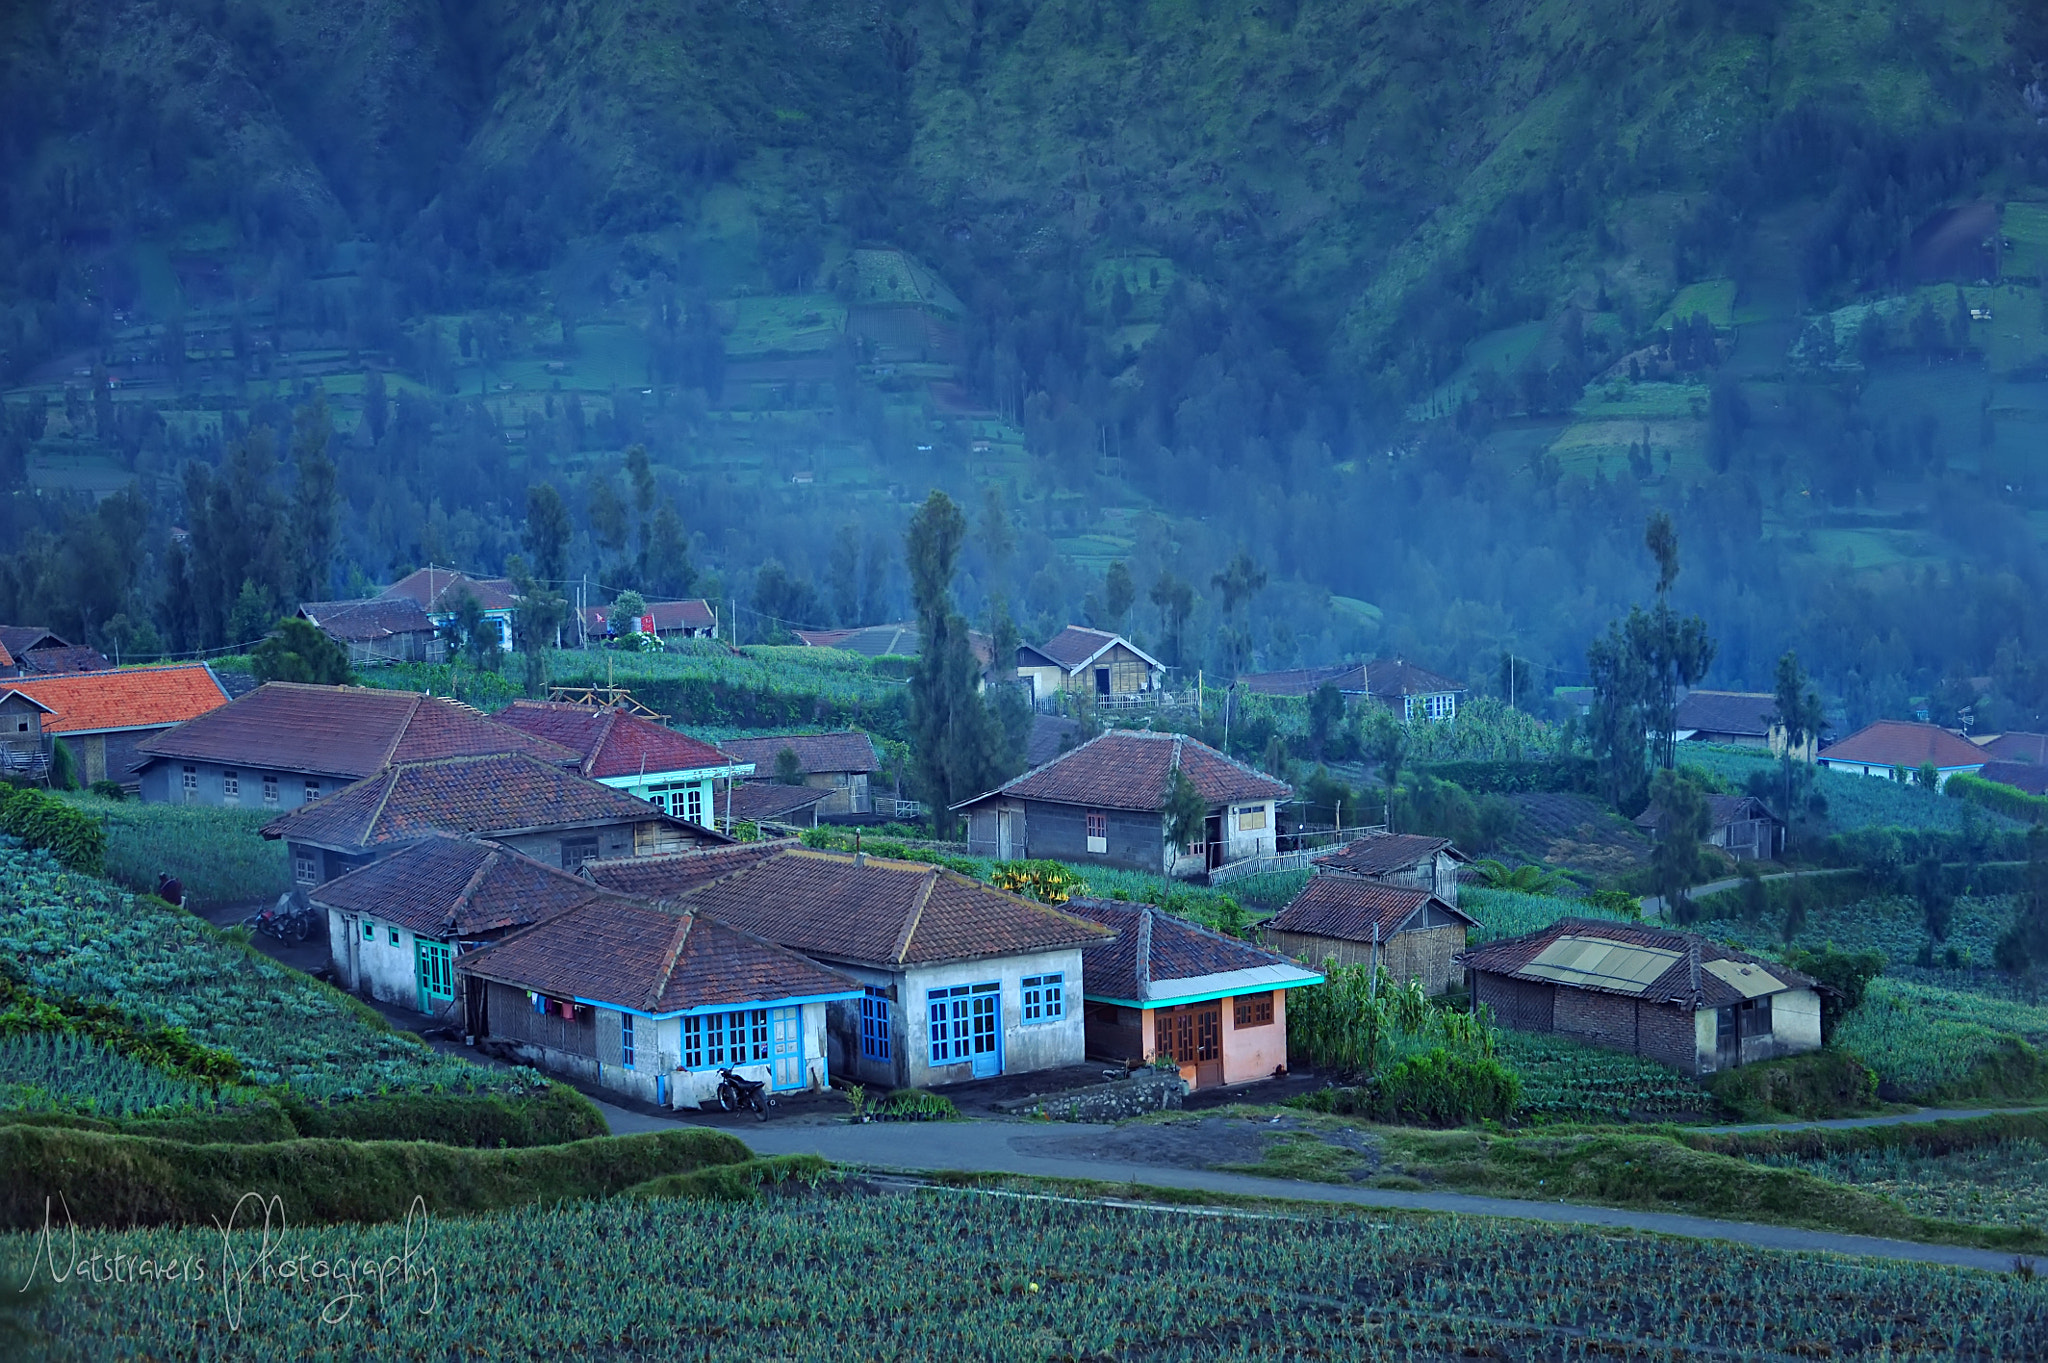 Photograph Colourful Tenggerese farm house, Cemoro Lawang by Nathalie Stravers on 500px